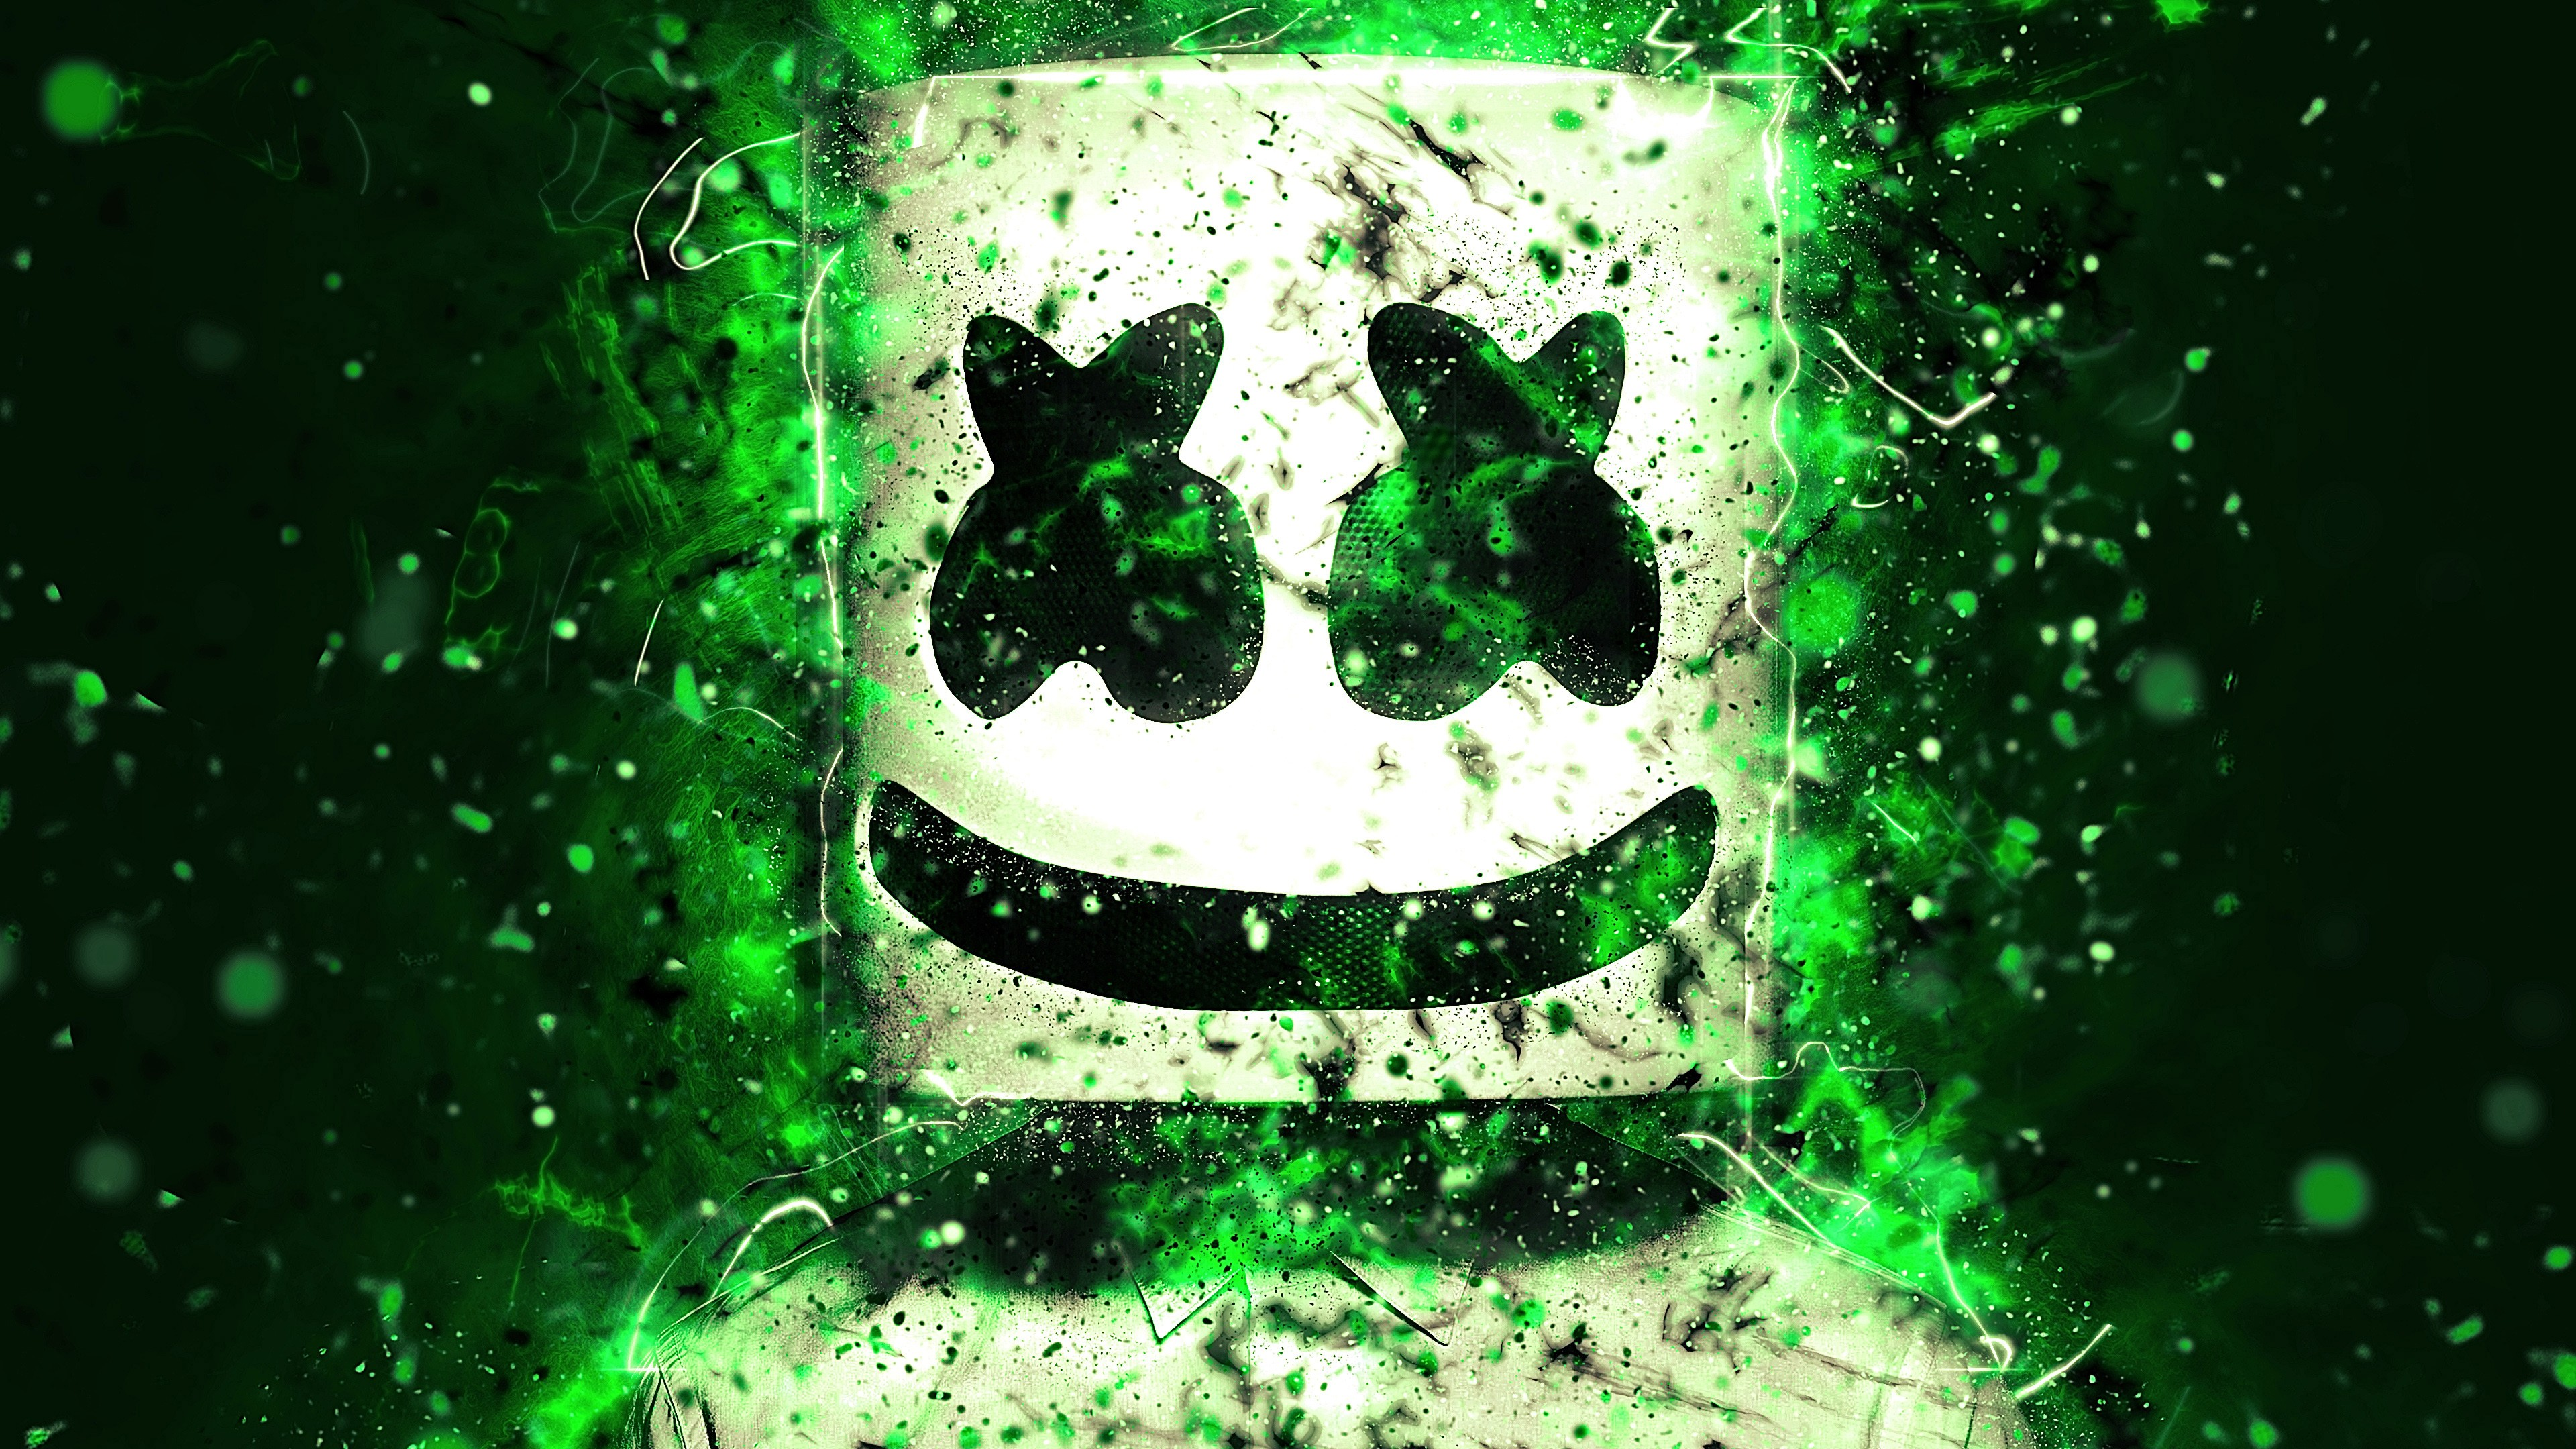 3d Wallpaper Pc Windows 7 Marshmello 4k Wallpapers Hd Wallpapers Id 26012